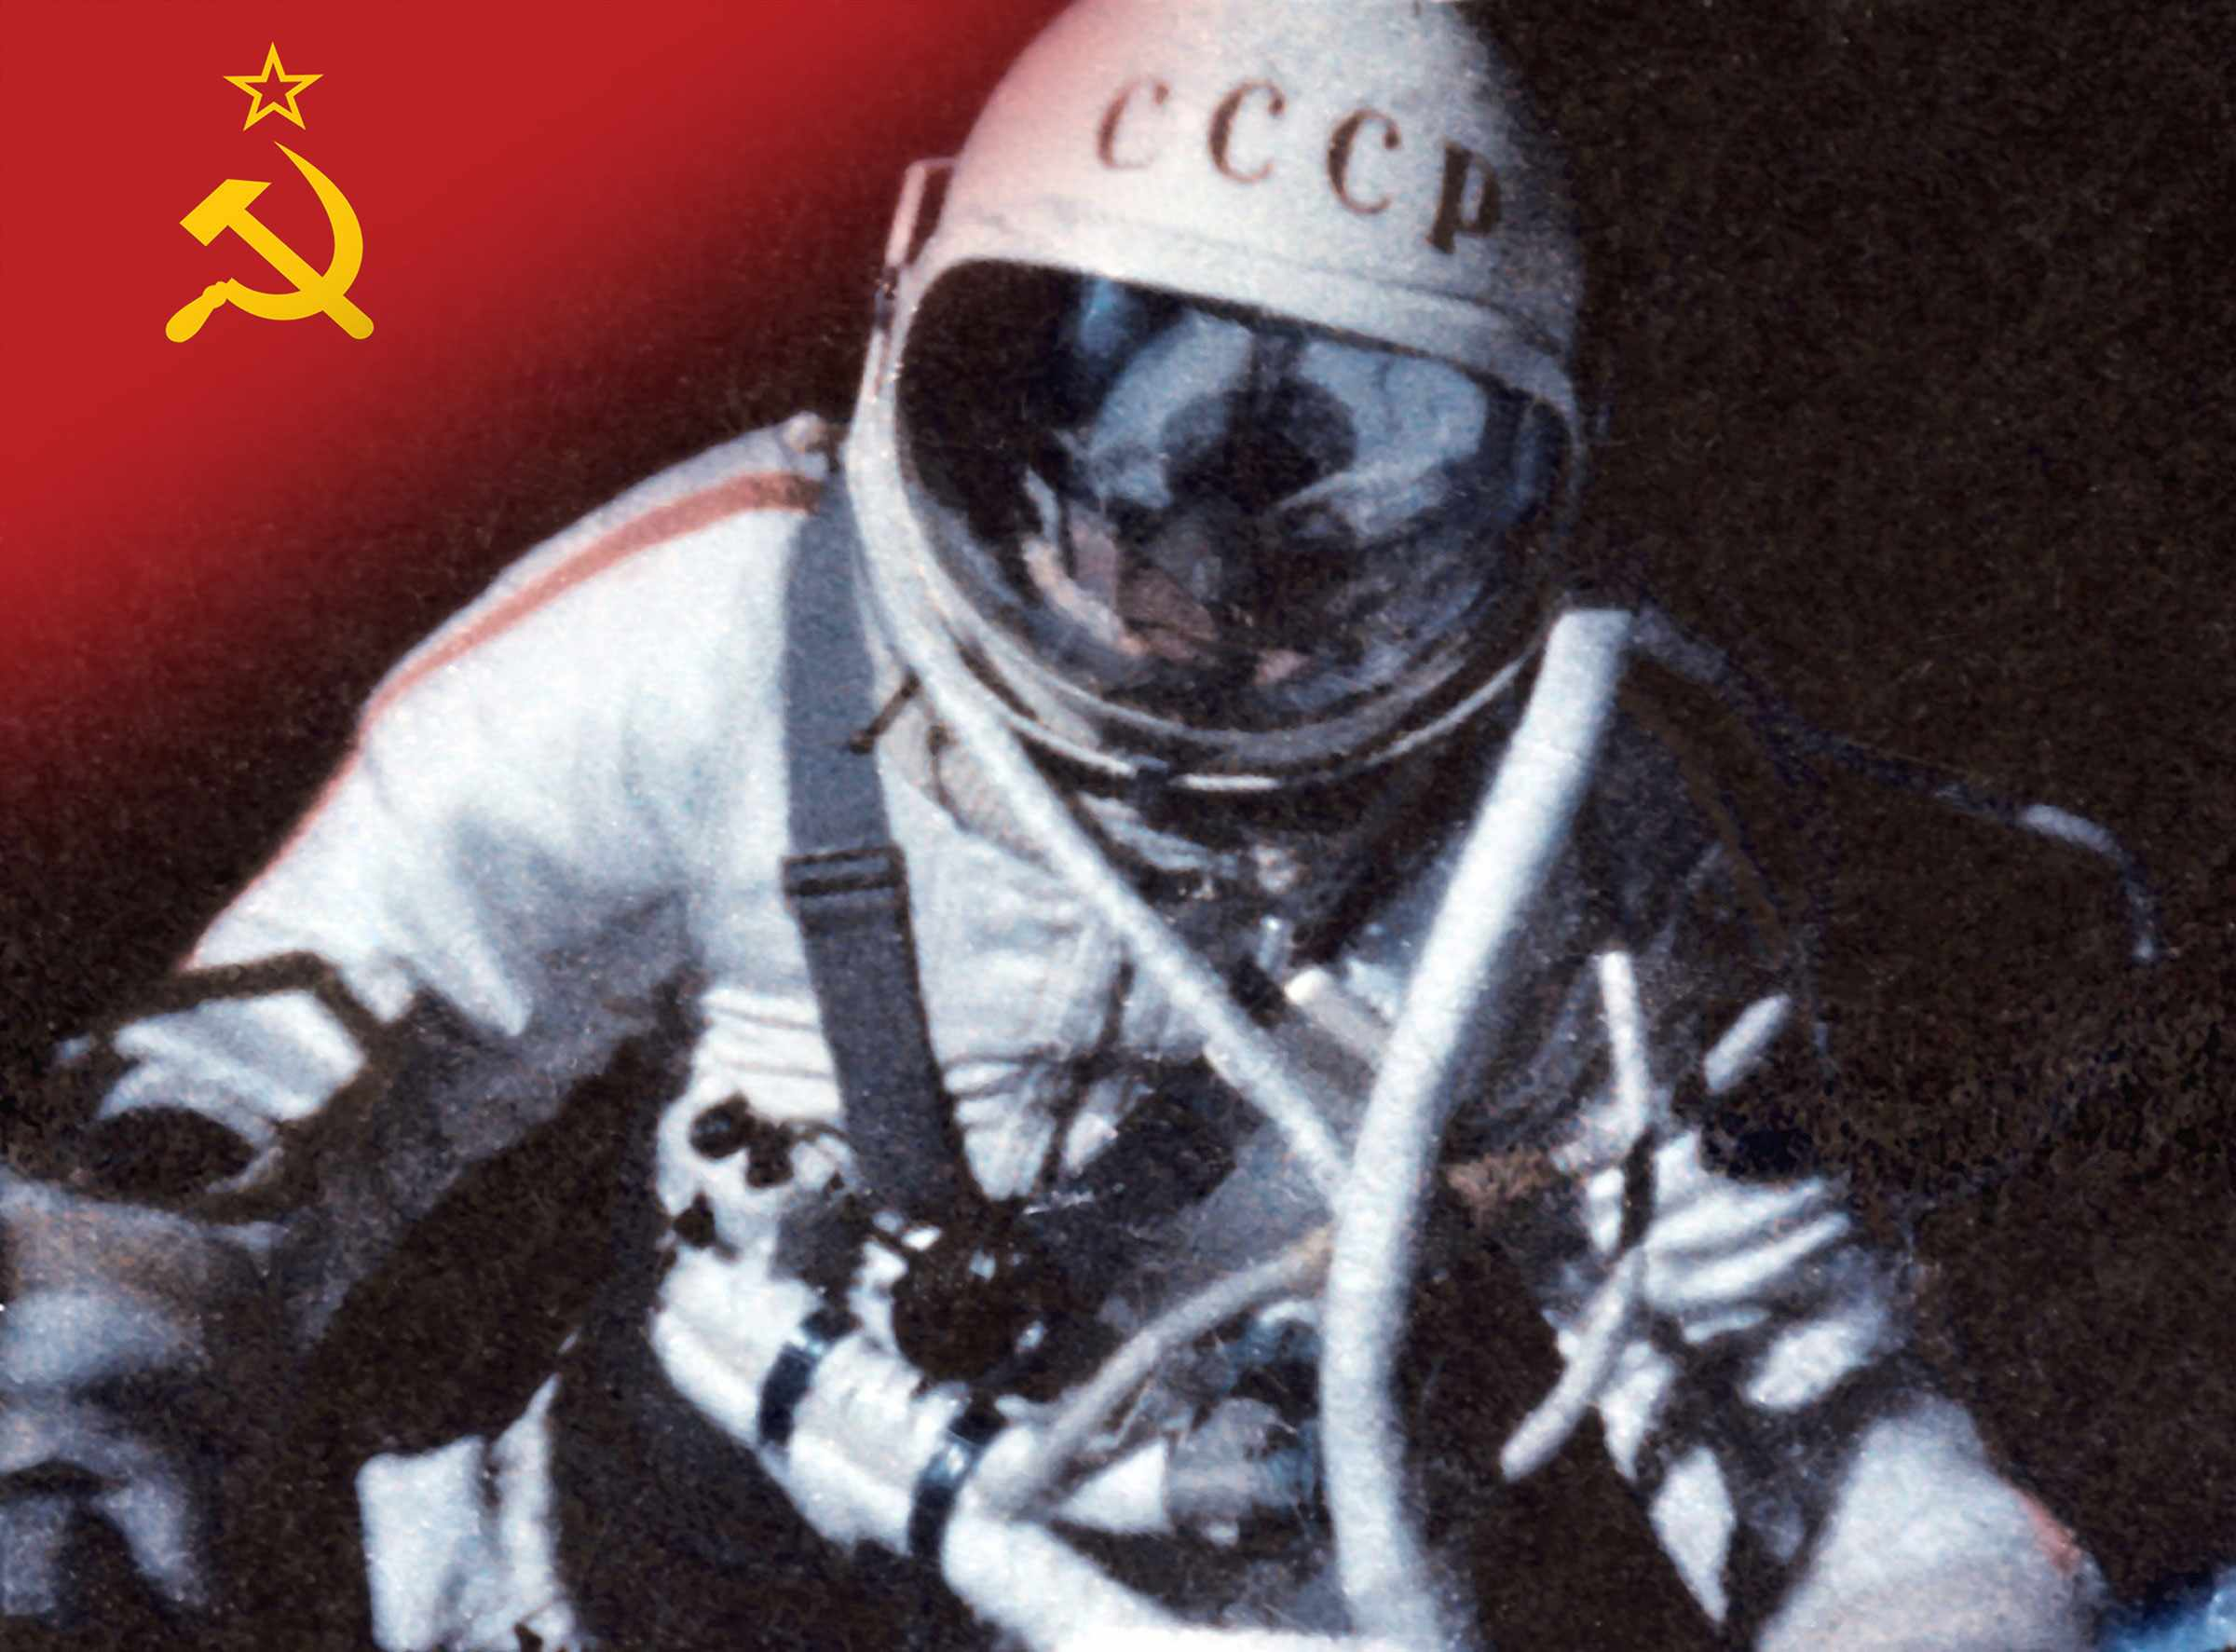 Alexei Leonov makes the first spacewalk on Voskhod 2. © Sovfoto/Universal Images Group via Getty Images